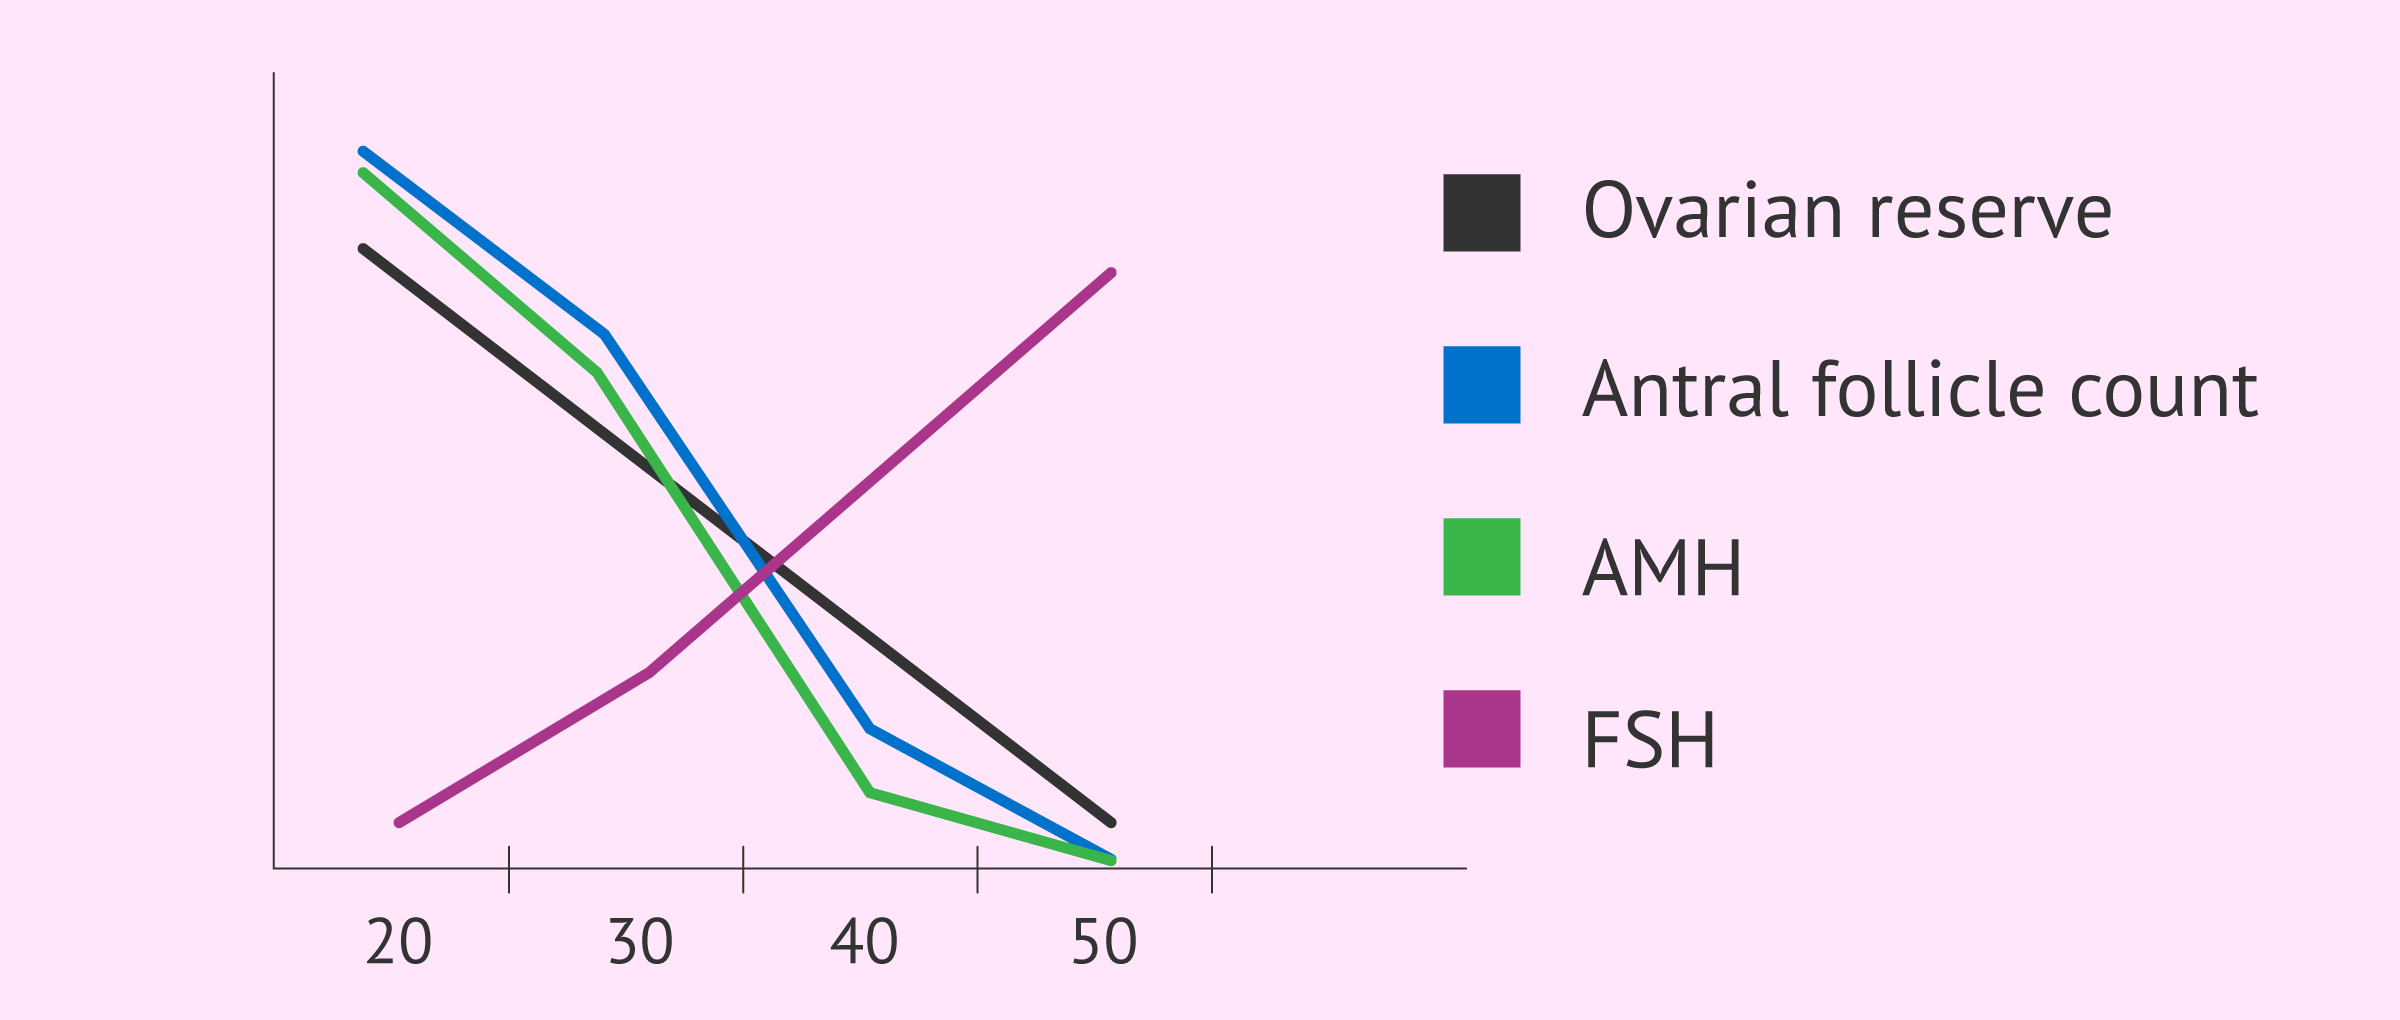 Imagen: Relation of AMH, FSH, follicle count and ovarian reserve